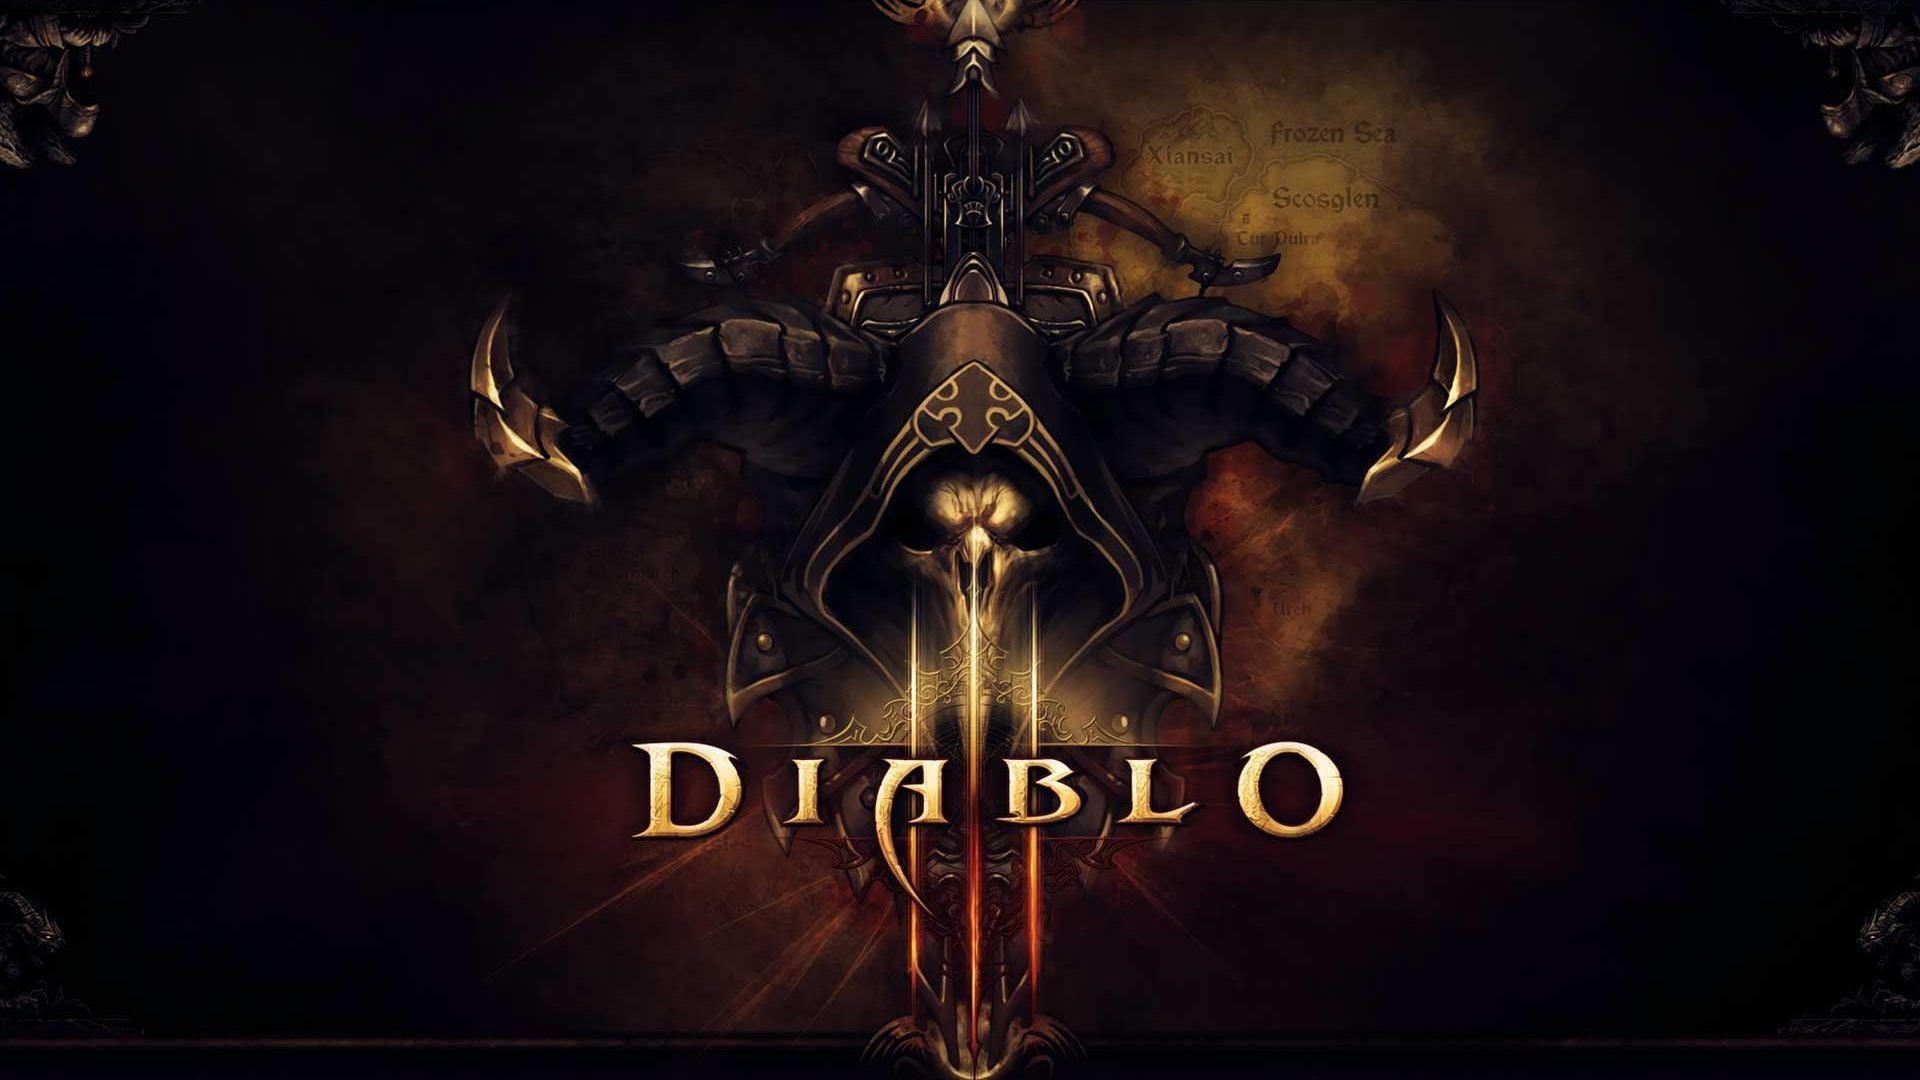 Hd Diablo 3 Wallpapers 80 Images